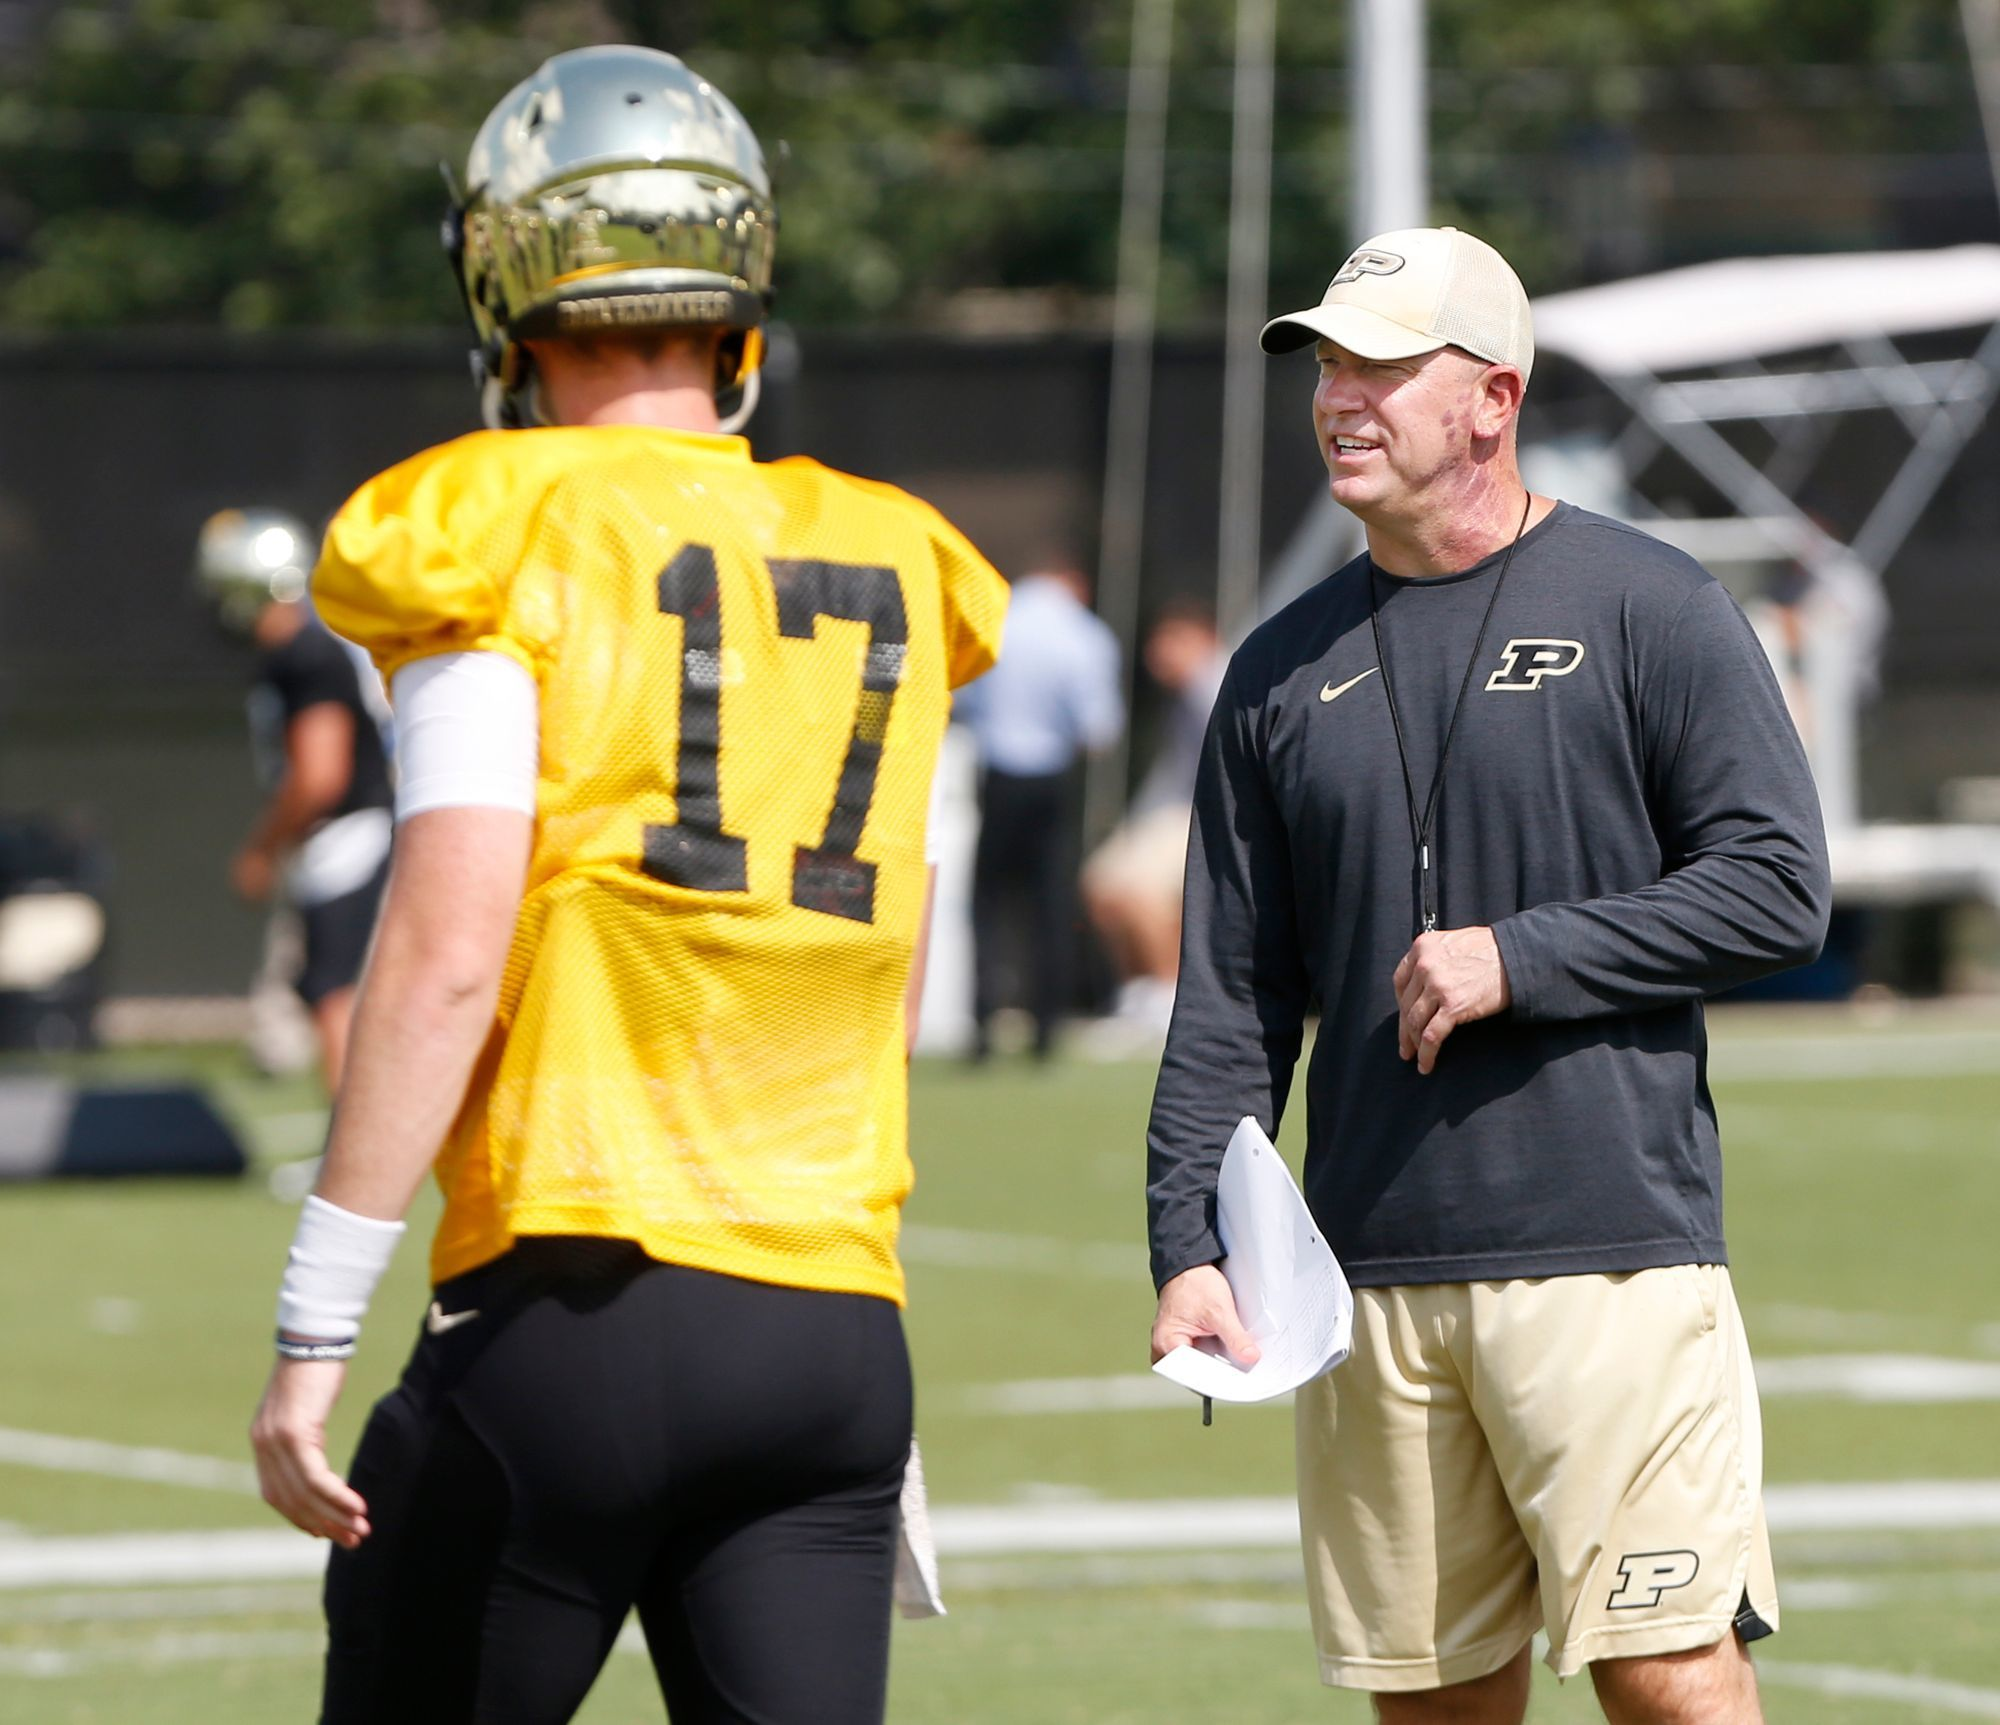 Search for quarterback in Purdue's 2020 recruiting class stays on course